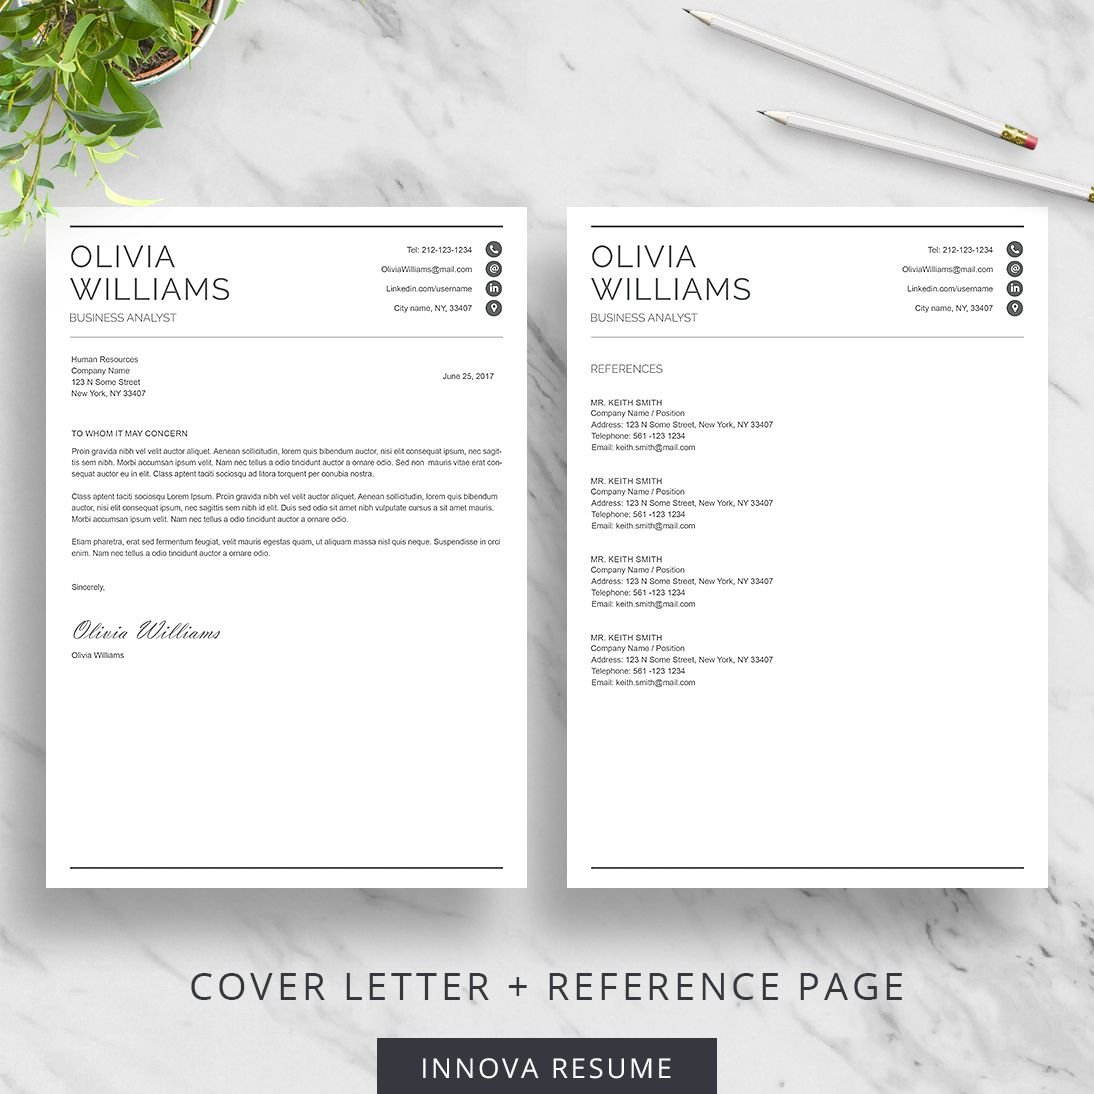 Professional Resume Template with Cover Letter and